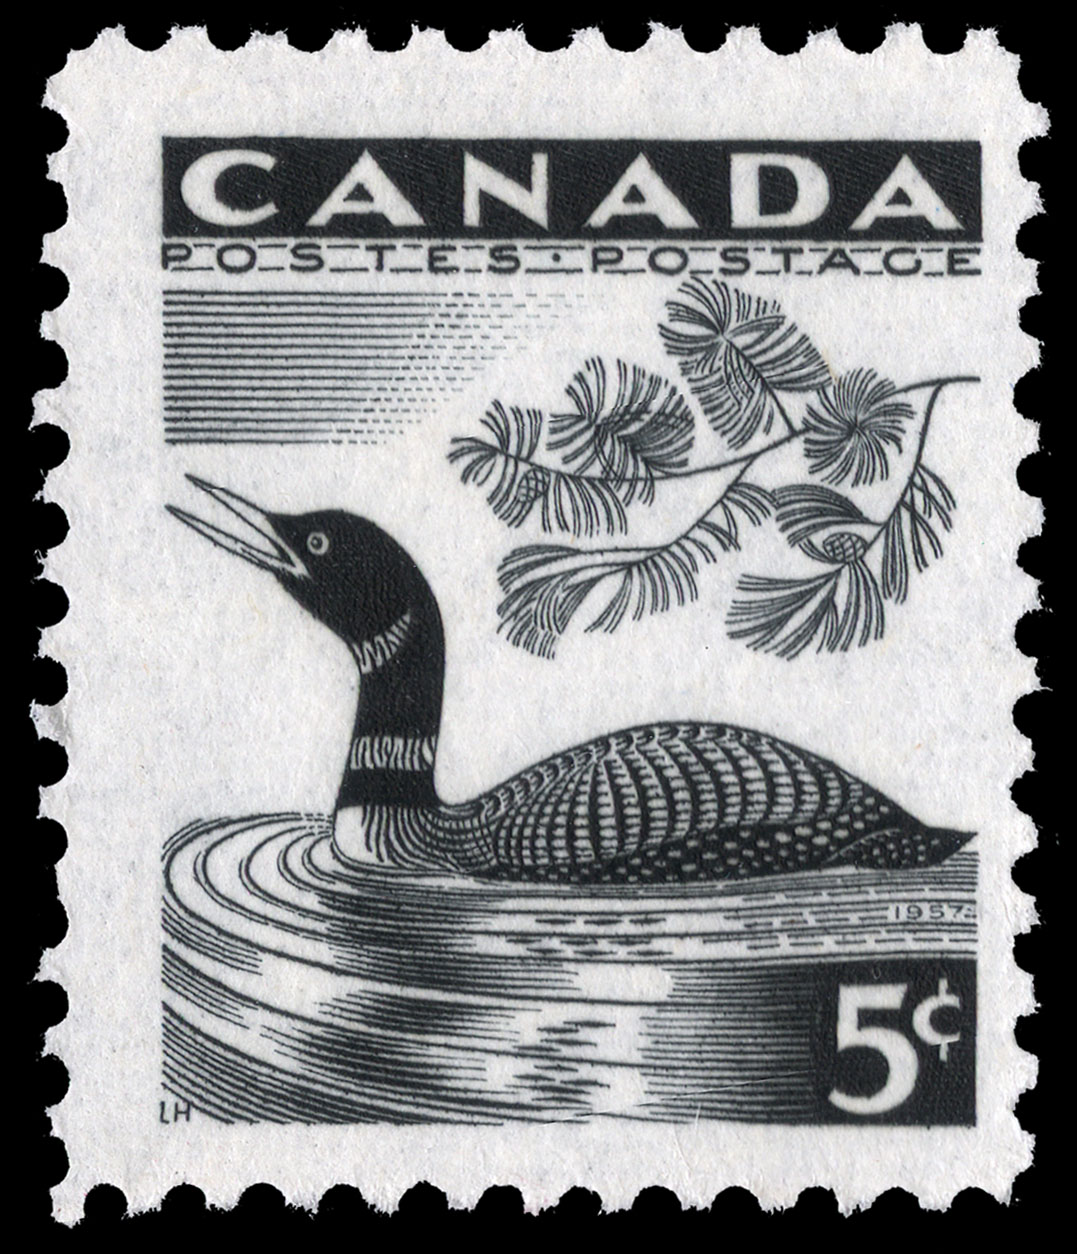 Common Loon Canada Postage Stamp